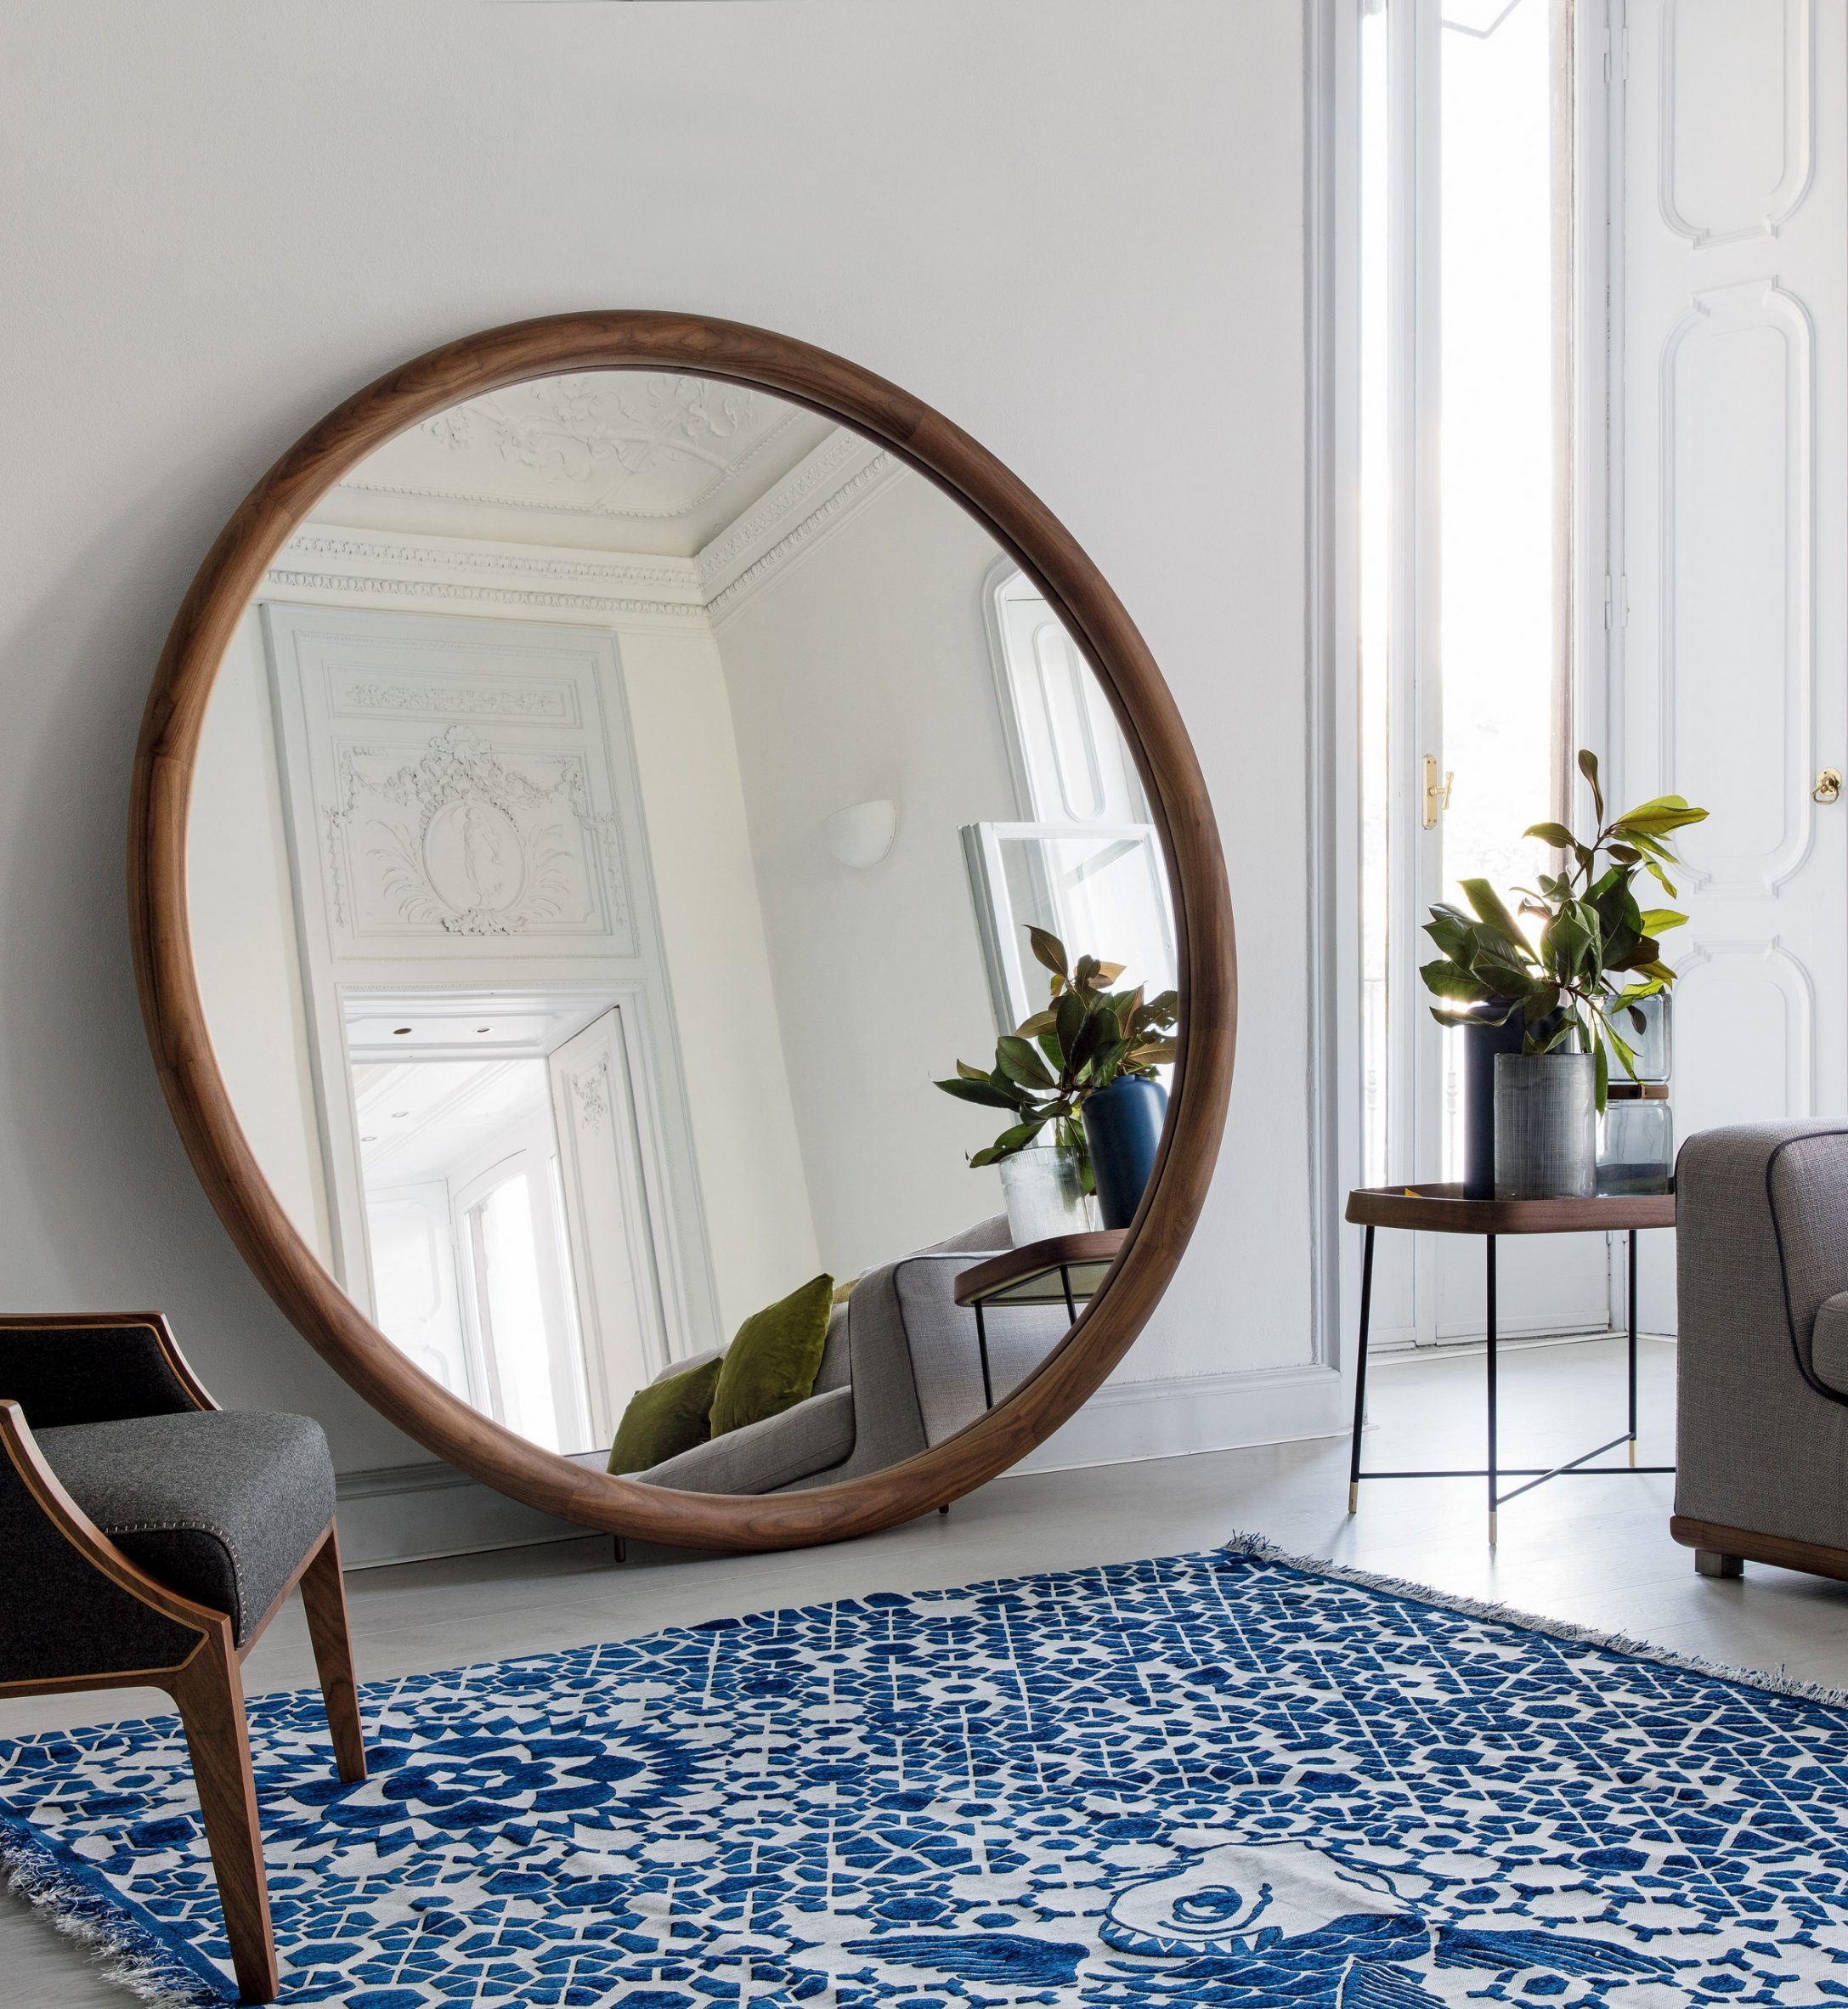 A photograph of a round wooden mirror